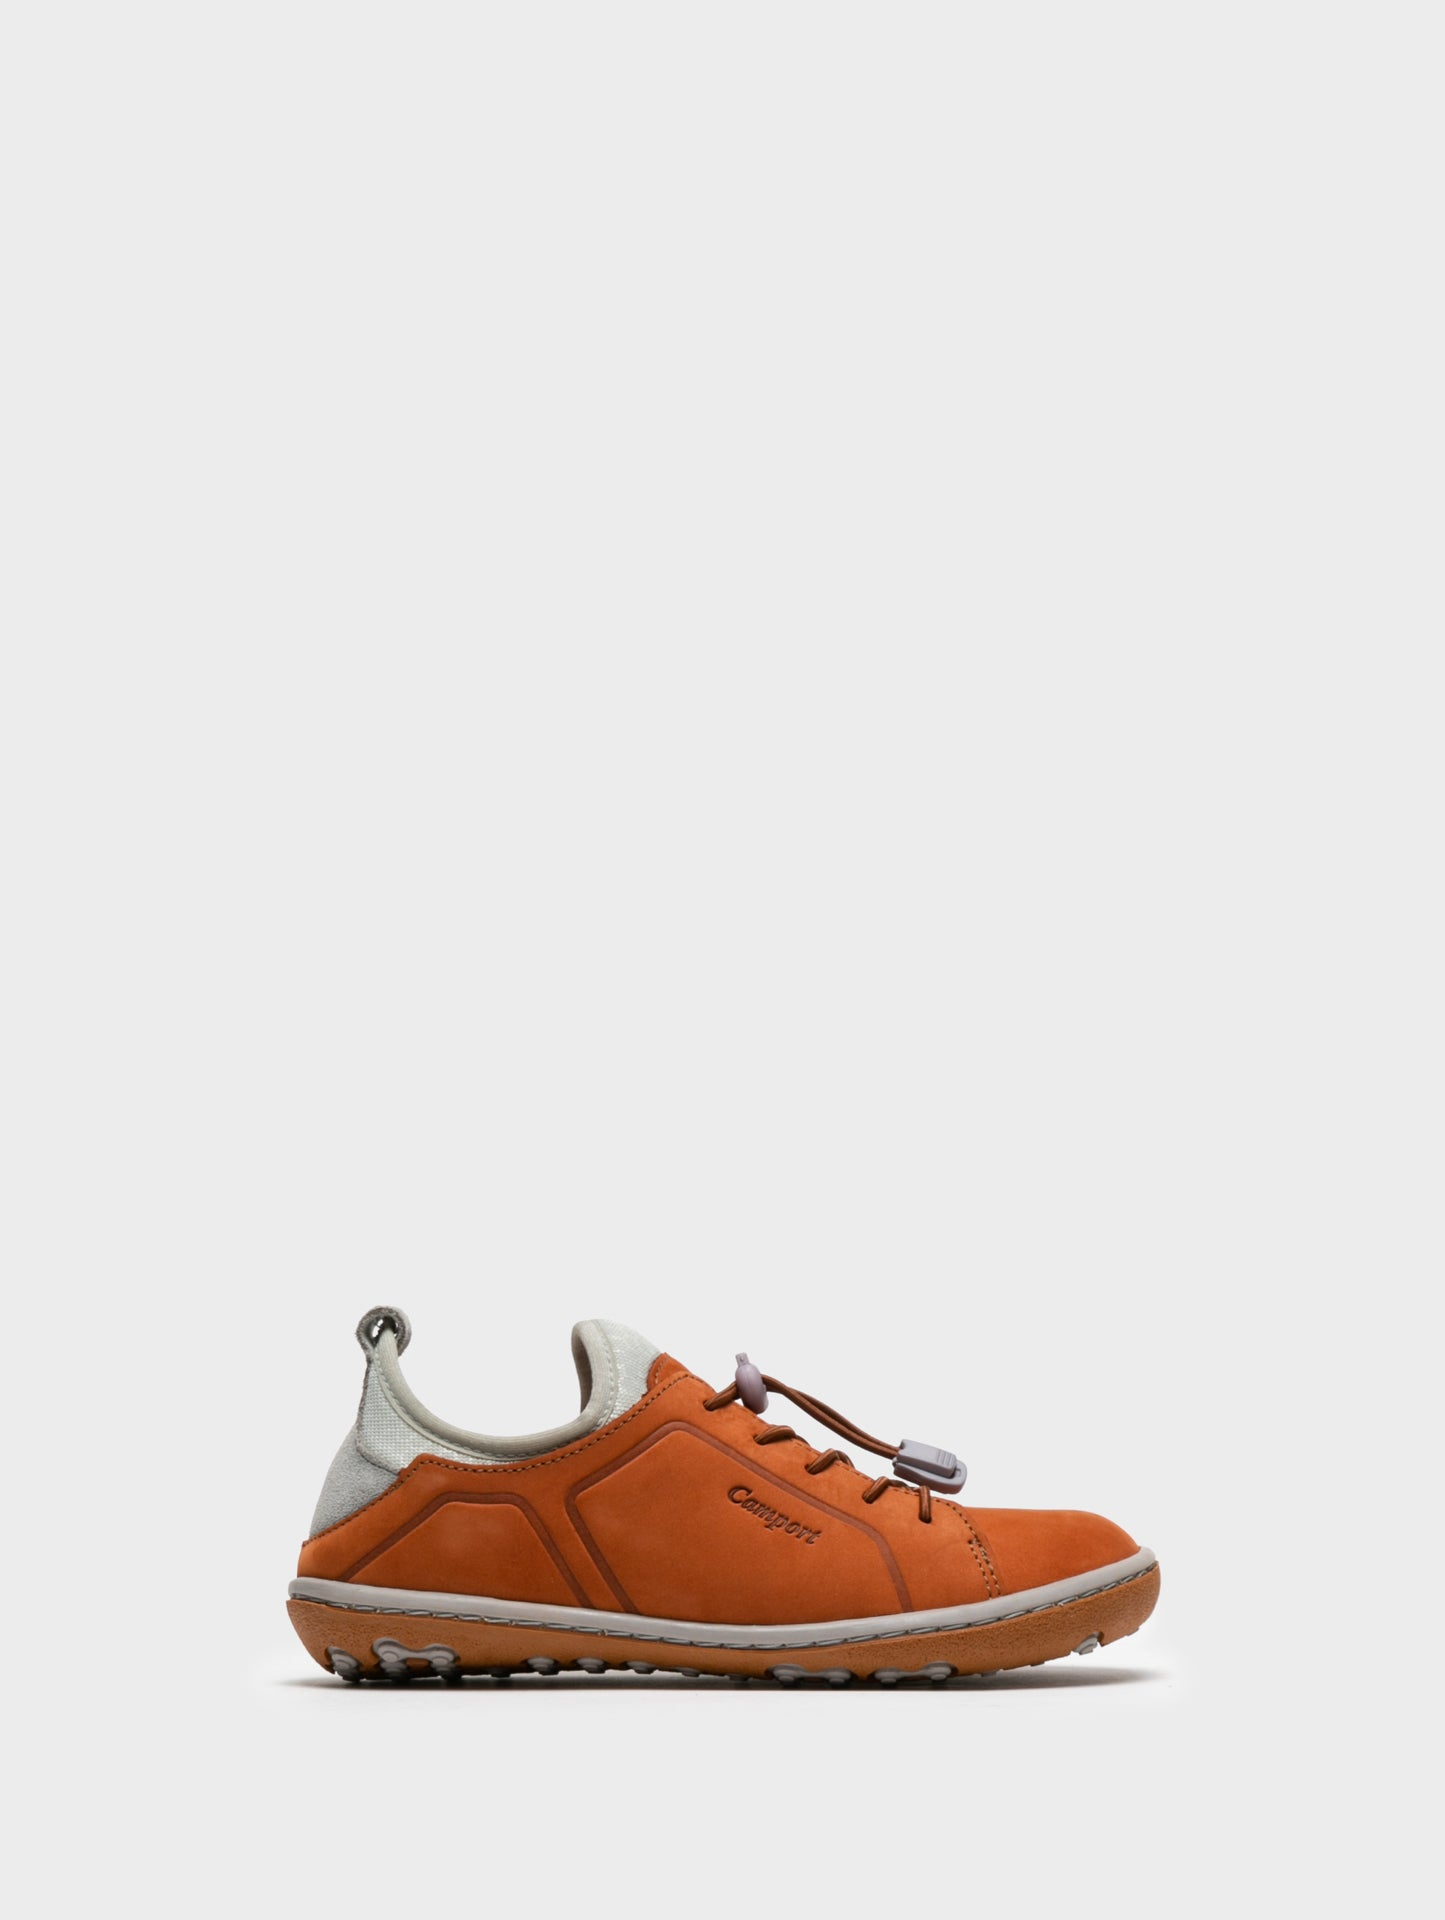 Camport Sneakers mit Schnürverschluss in Orange Foncé